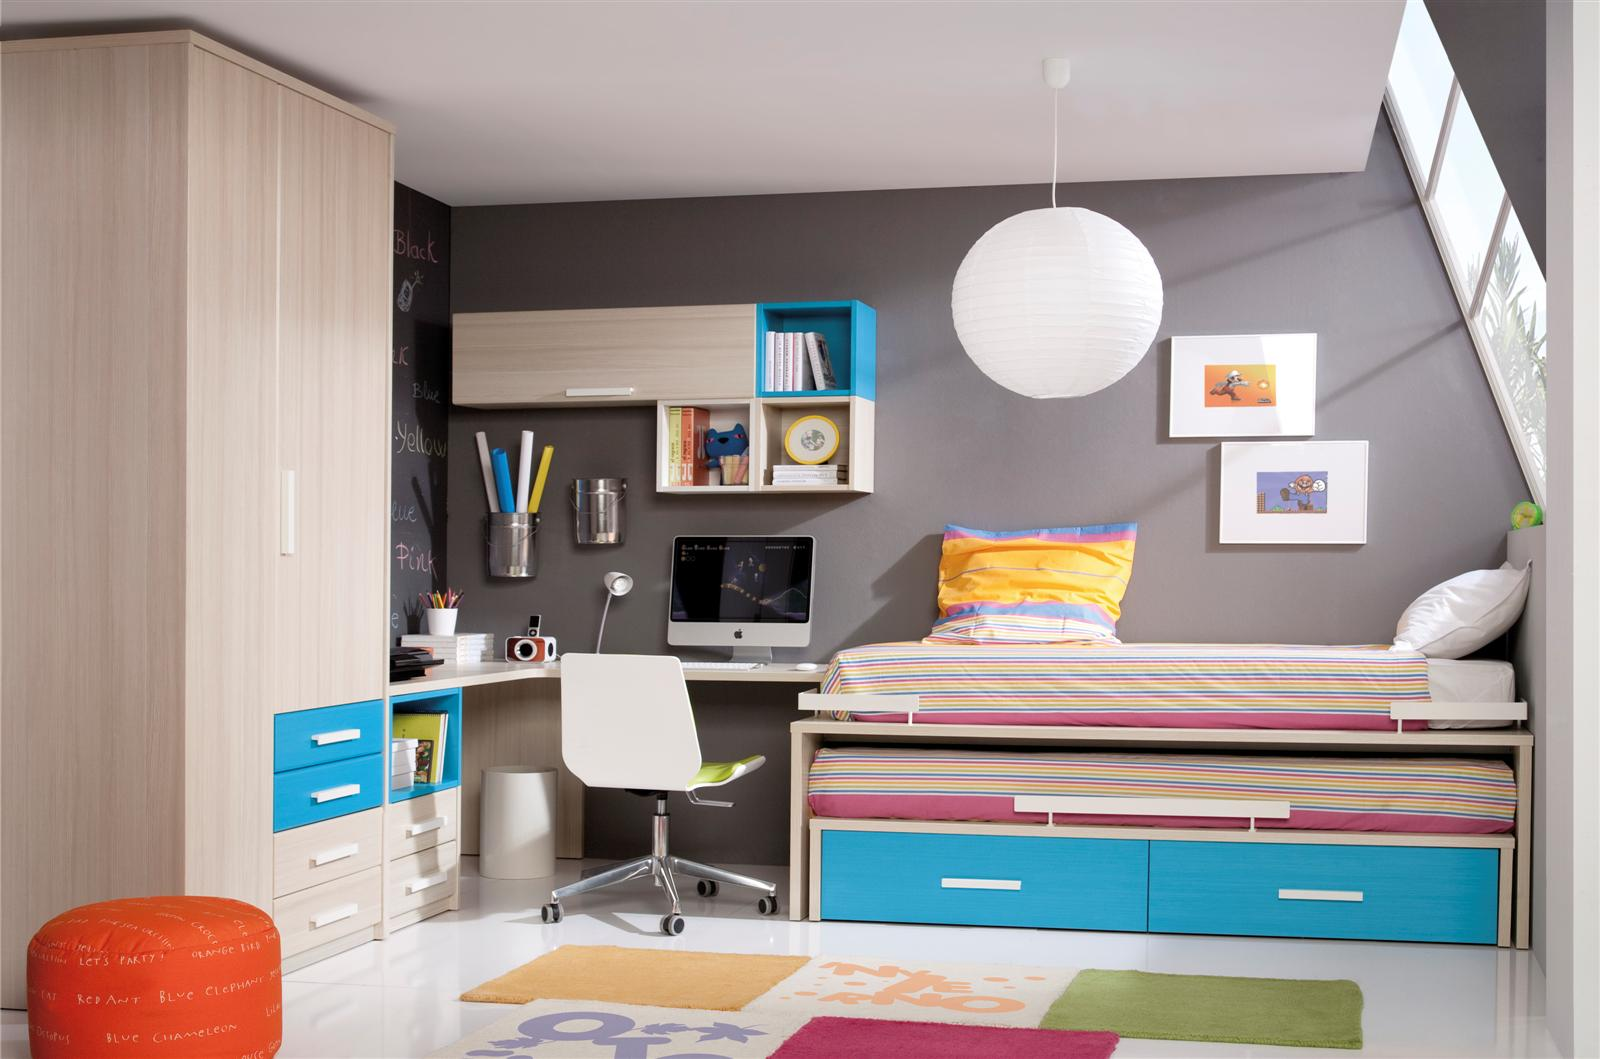 Psicolog a del color para decorar habitaciones infantiles for Decorar paredes dormitorio juvenil